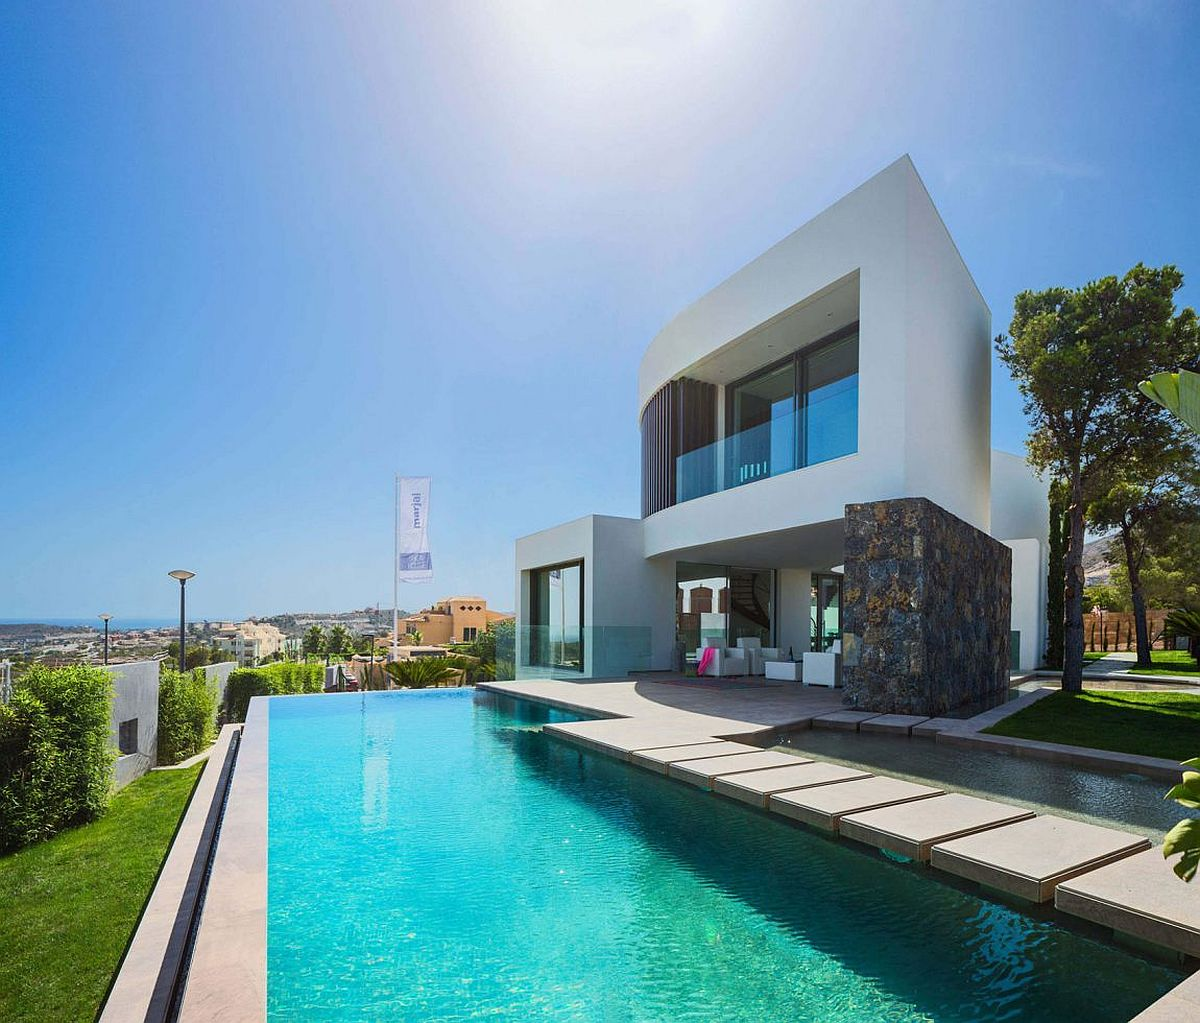 Contemporary pool design with stepping stones adds to the style of the Spanish home